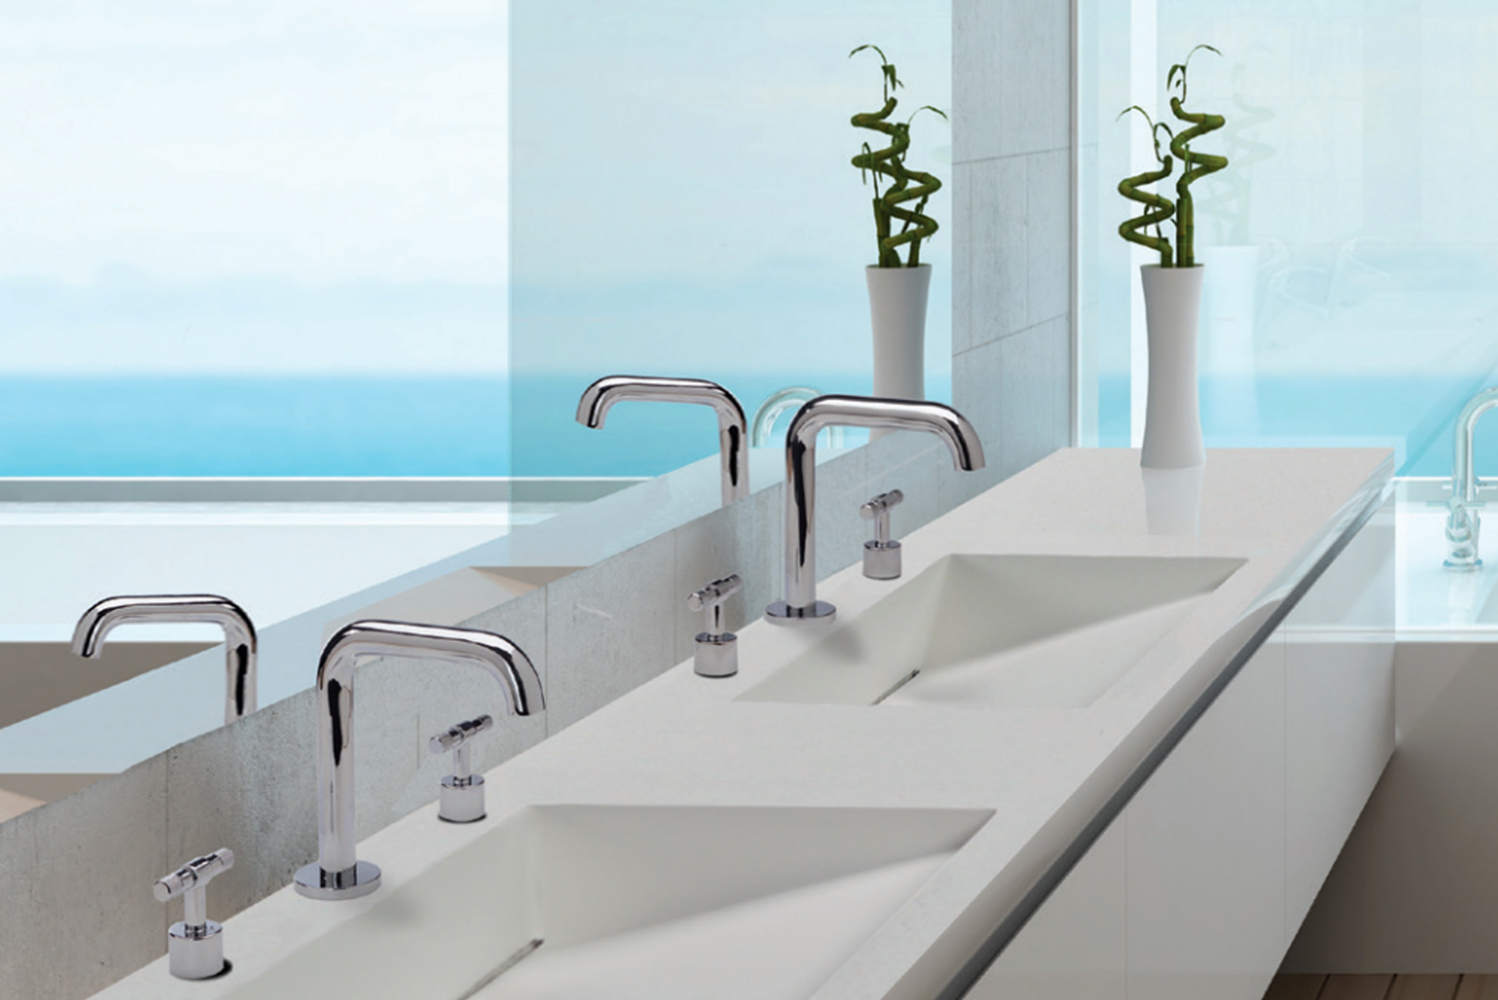 This rectangular basin is notable for its sloped bottom that runs from the front to an integrated slotted drain along the back of the sink bottom.